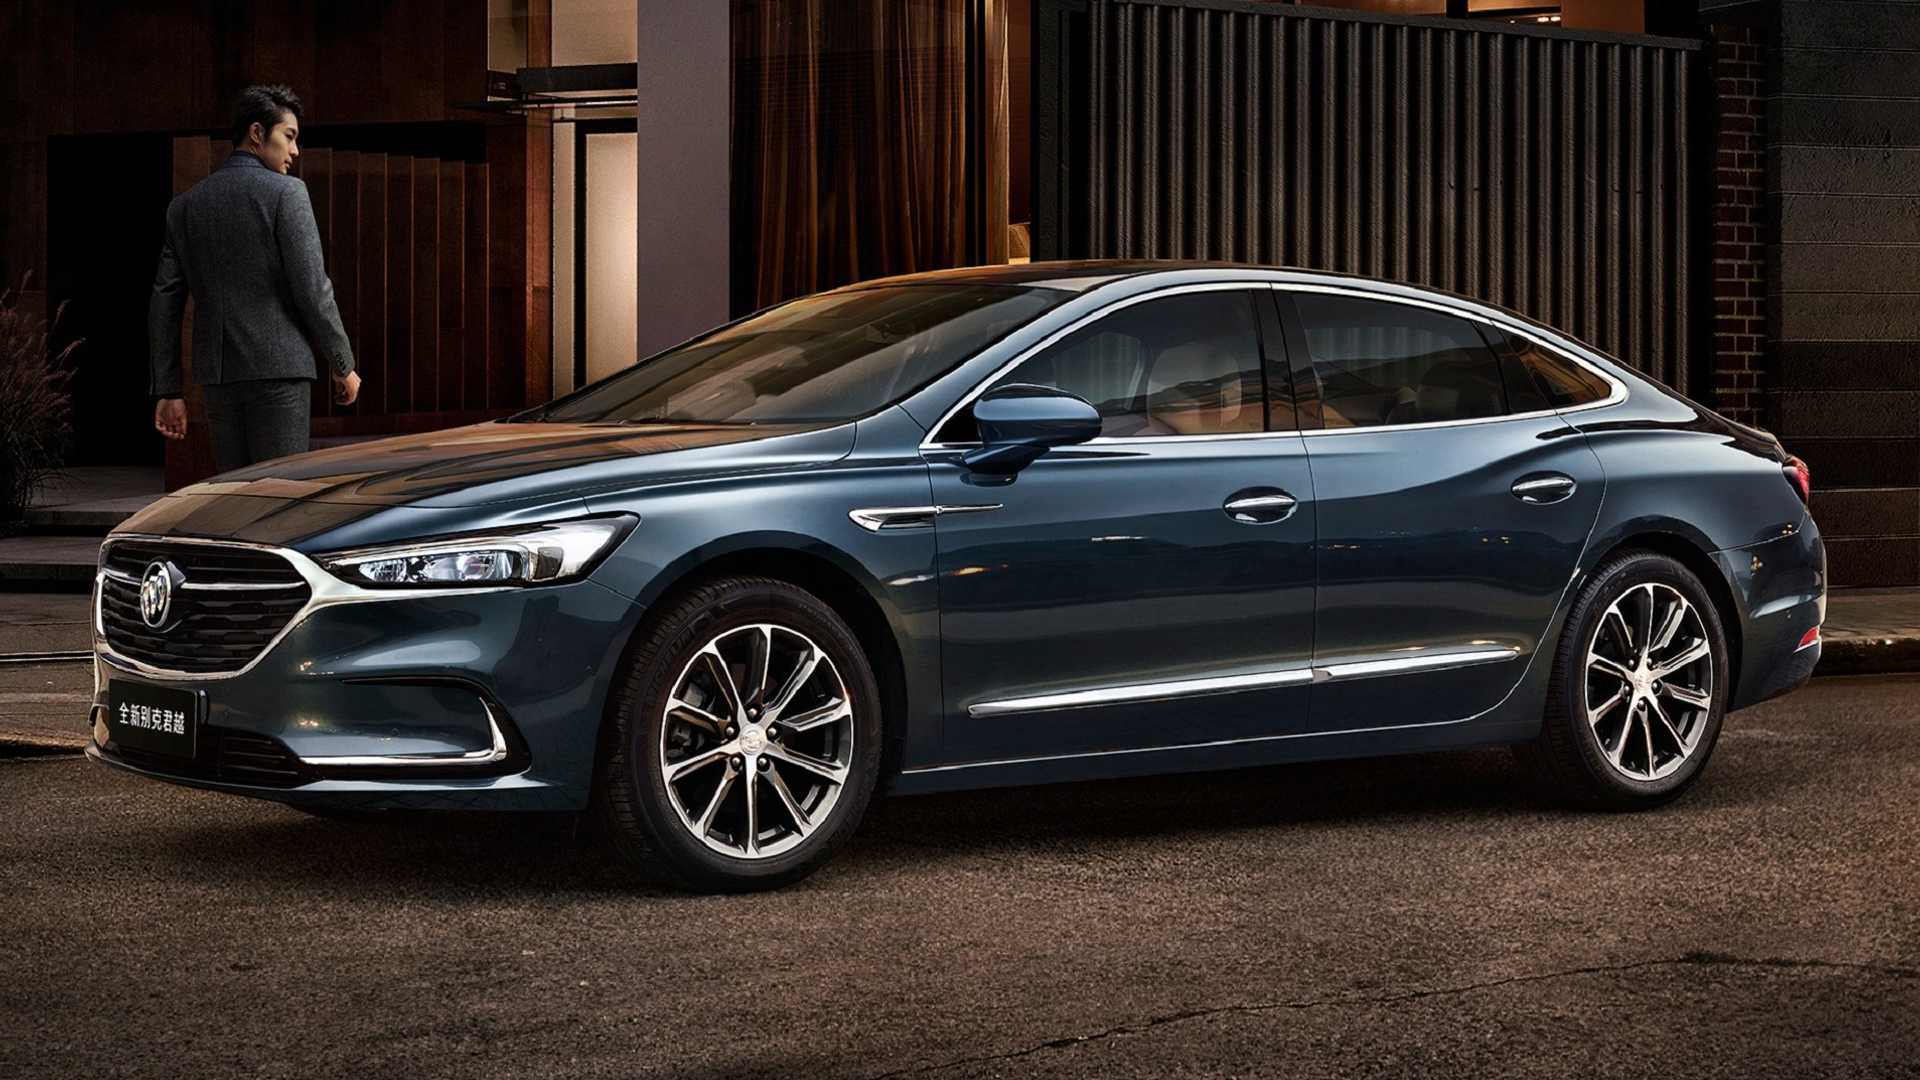 52 A 2020 Buick Lacrosse Premium Price And Release Date